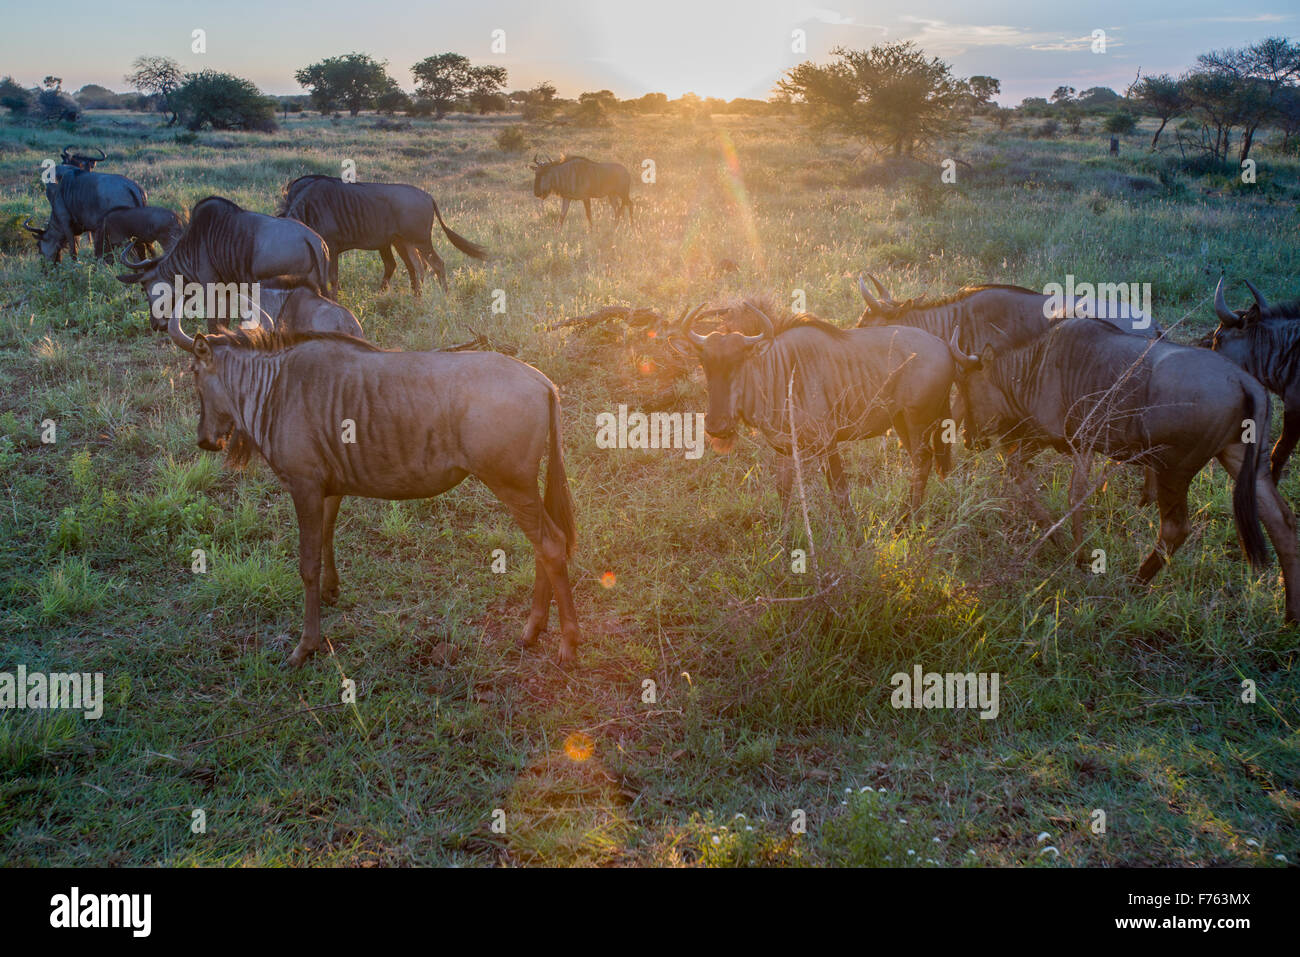 SOUTH AFRICA- Kruger National Park Wildebeast (Connochaetes) - Stock Image